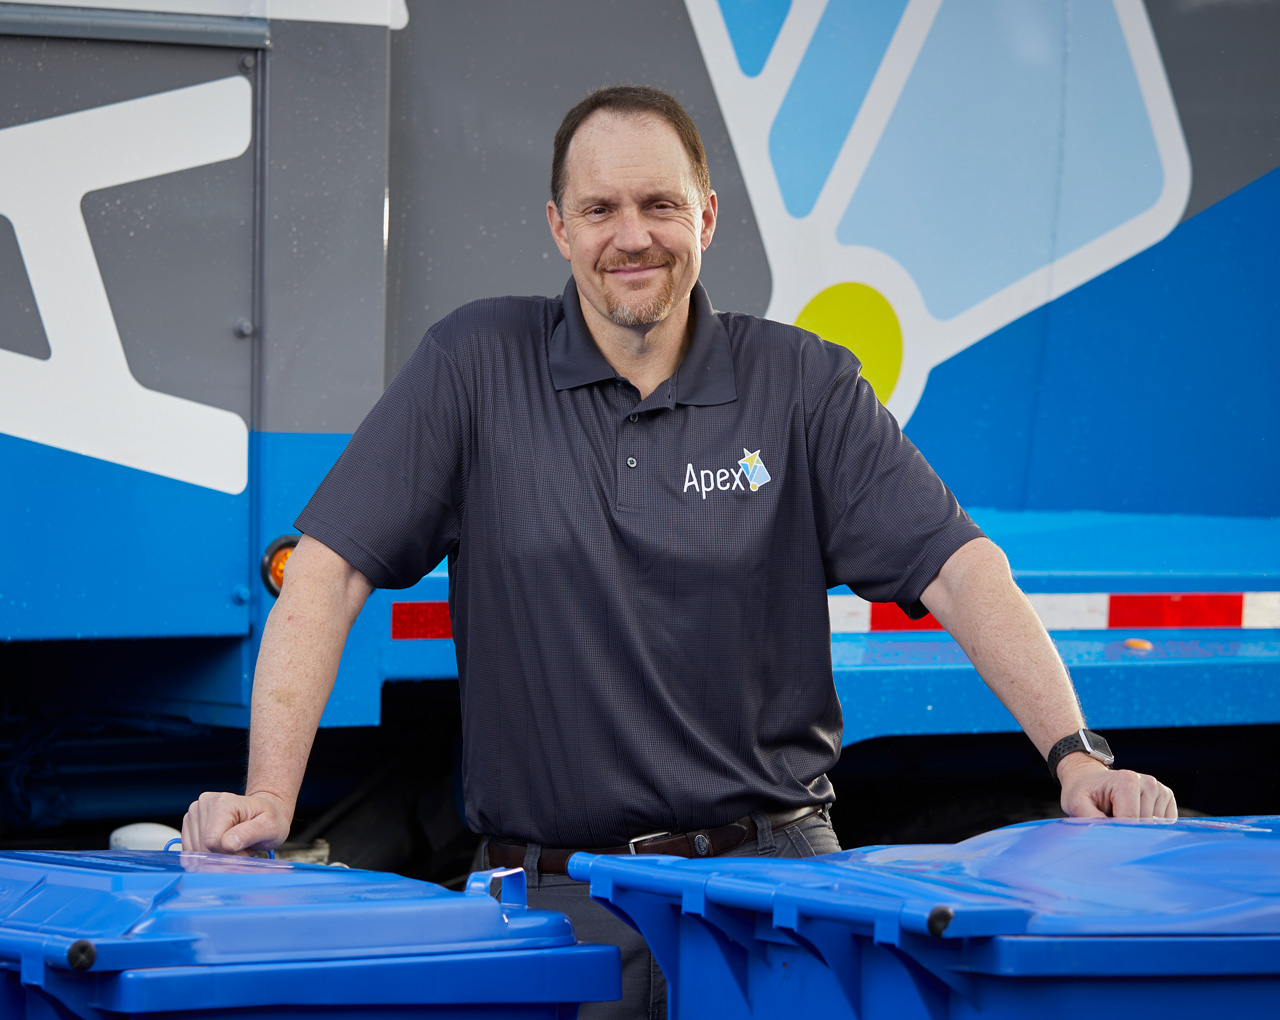 Apex Recycling & Disposal